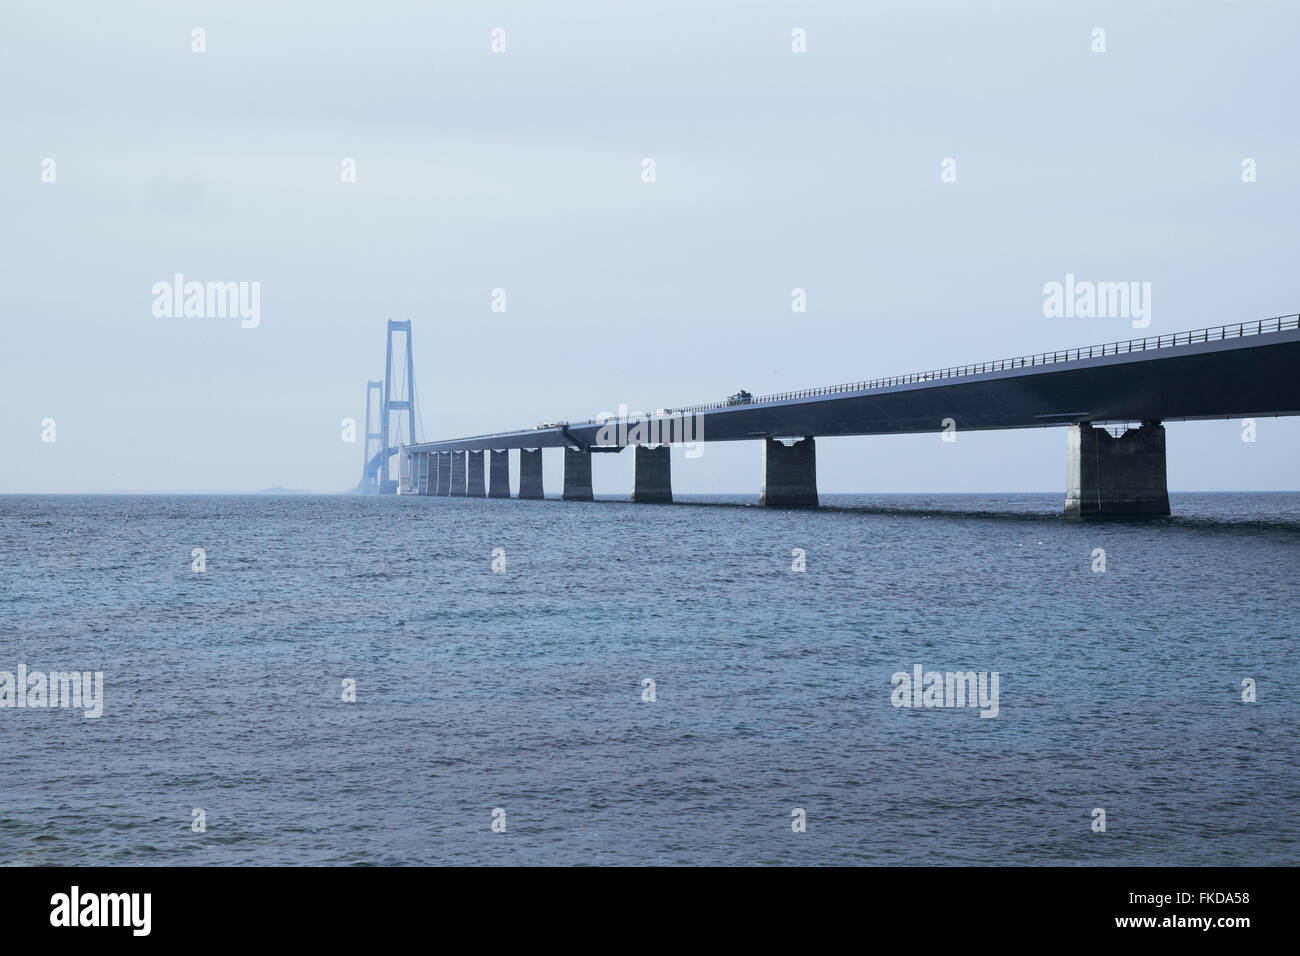 Great belt bridge seen from the Sealand side where the access ramp leads to the pylons - Stock Image